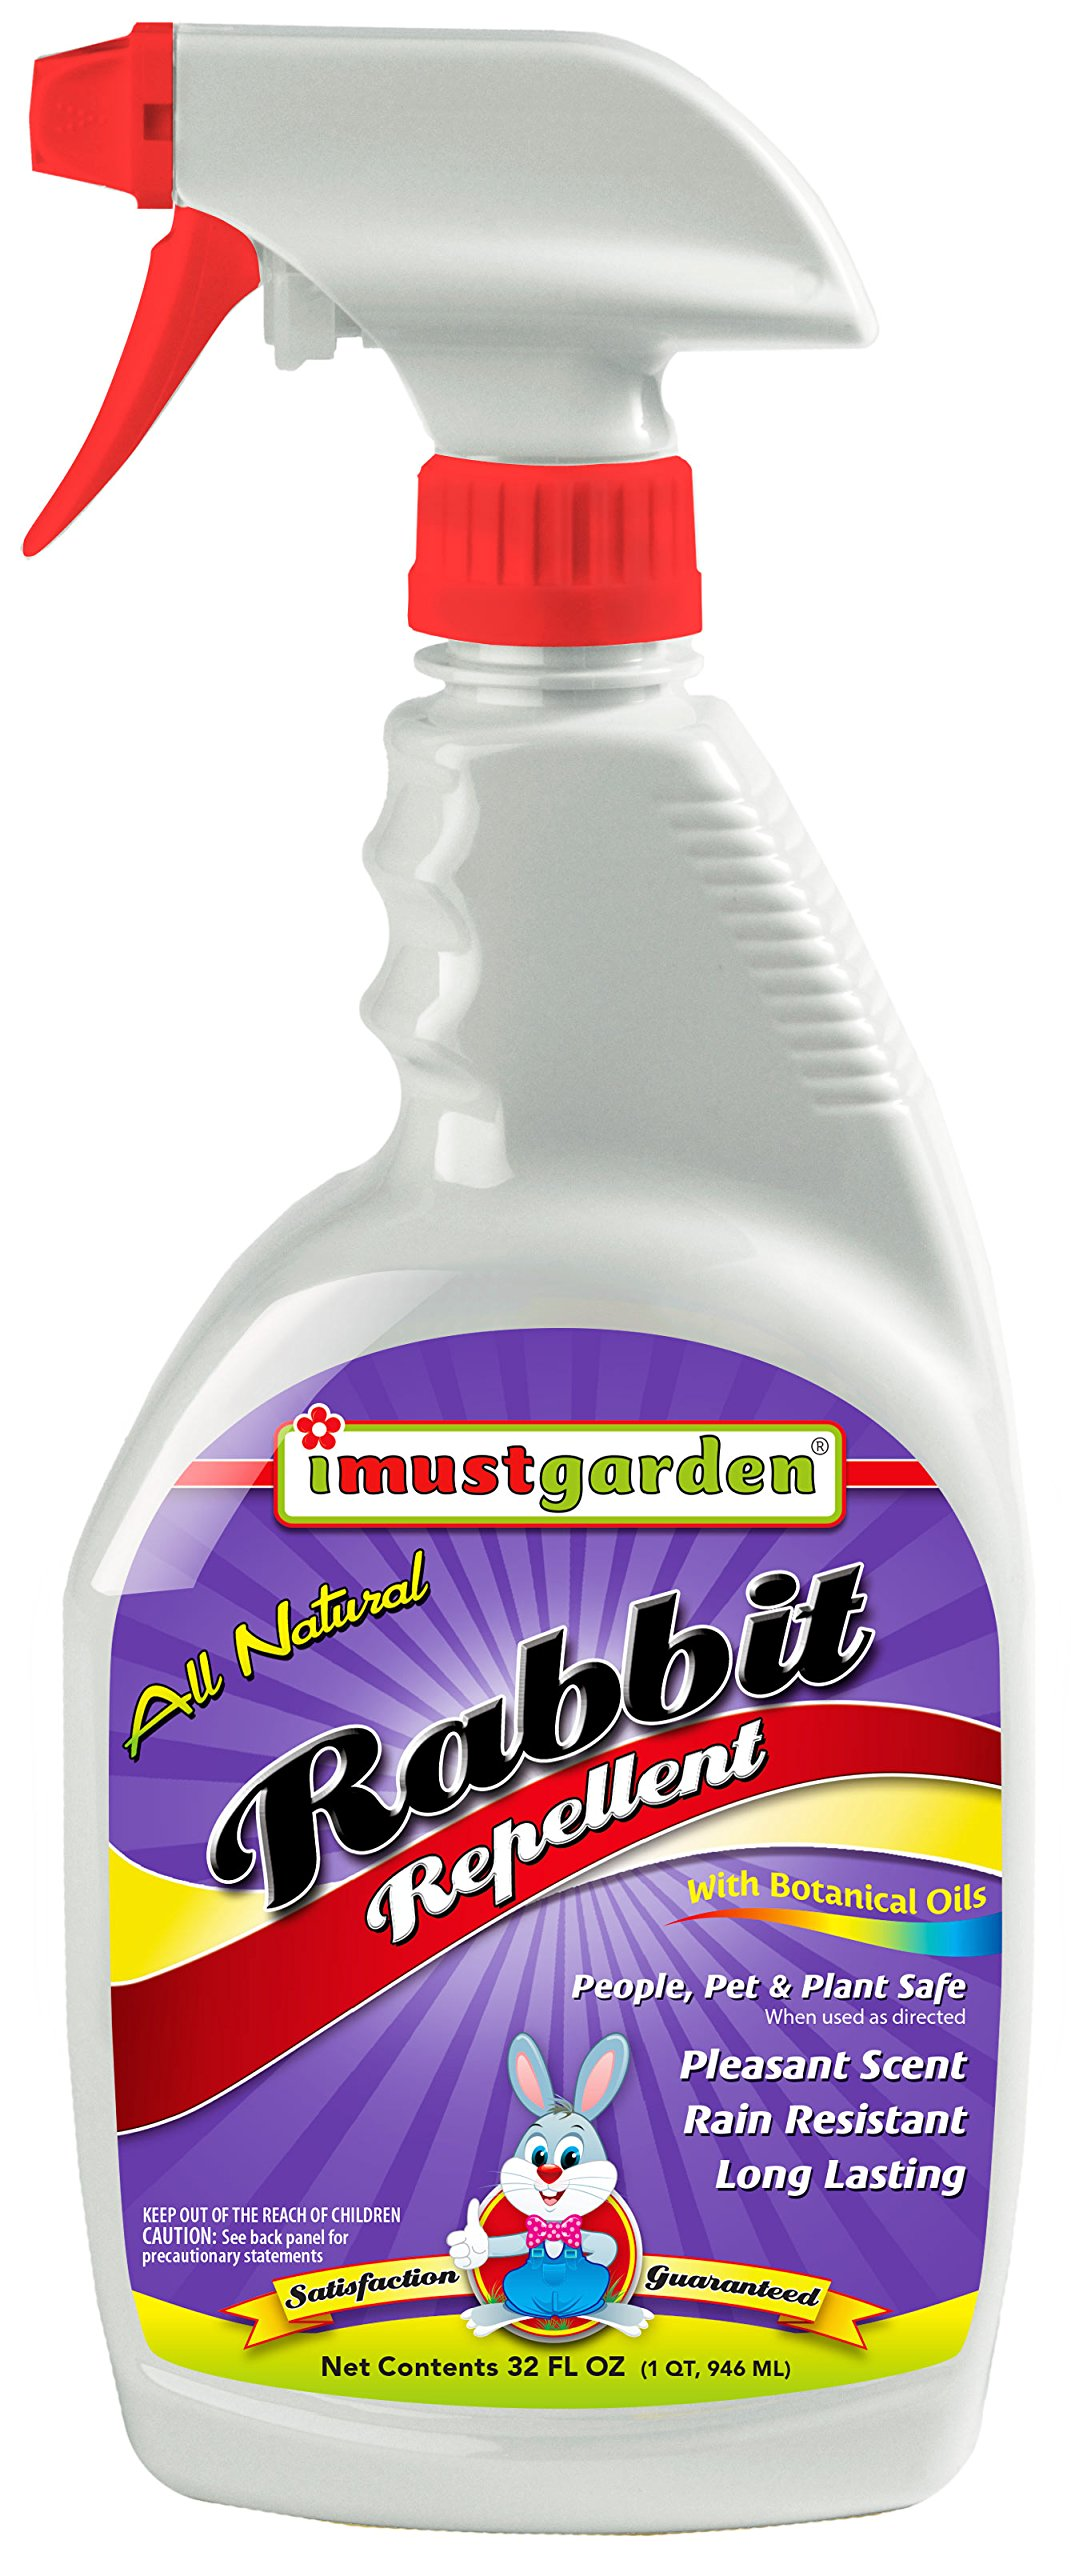 I Must Garden Rabbit Repellent: Mint Scent Rabbit Spray for Plants & Lawns – 32 oz. Ready to Use